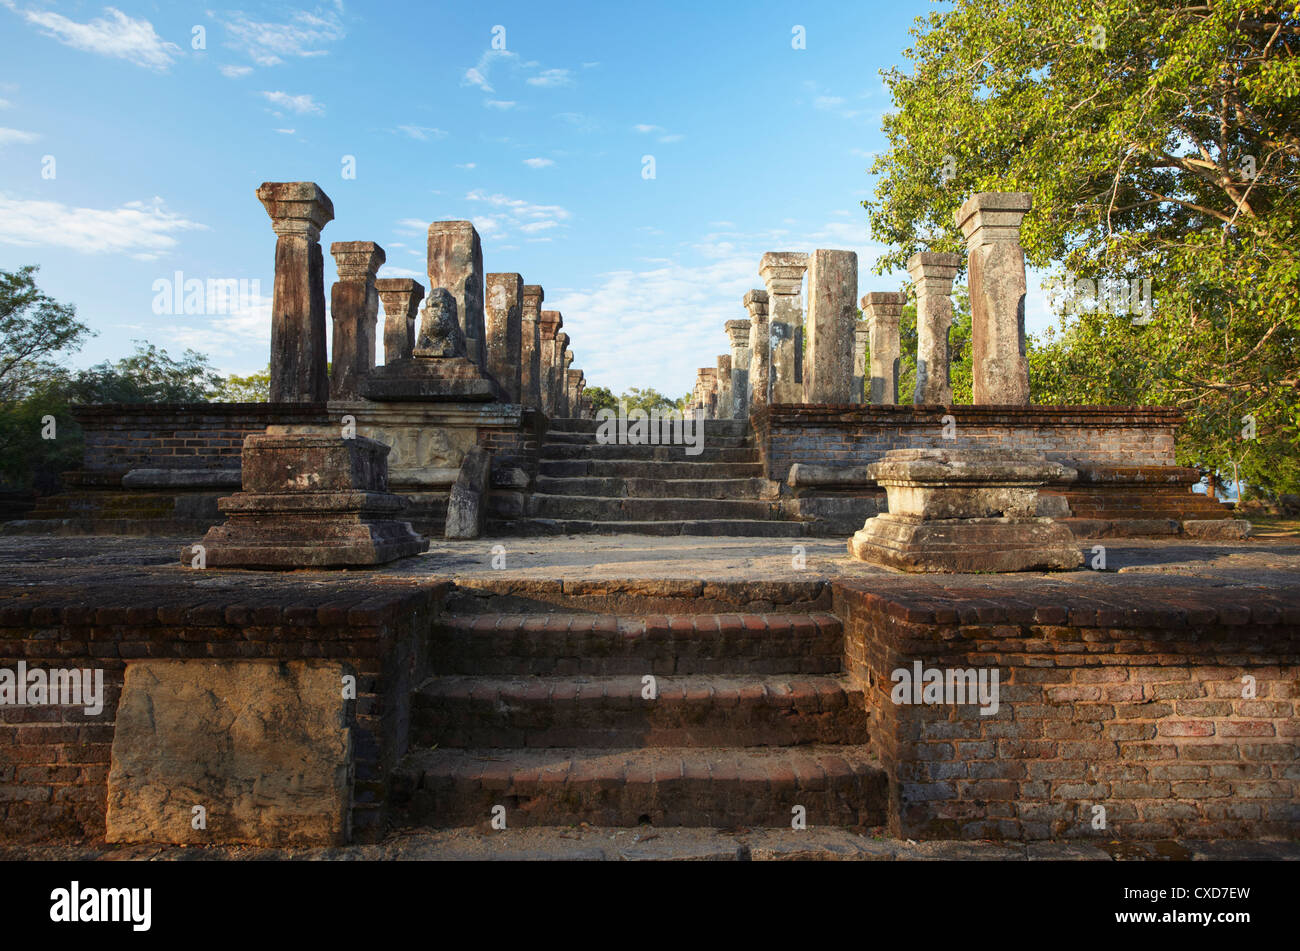 Audience Chamber, Island Gardens, Polonnaruwa, UNESCO World Heritage Site, North Central Province, Sri Lanka, Asia - Stock Image